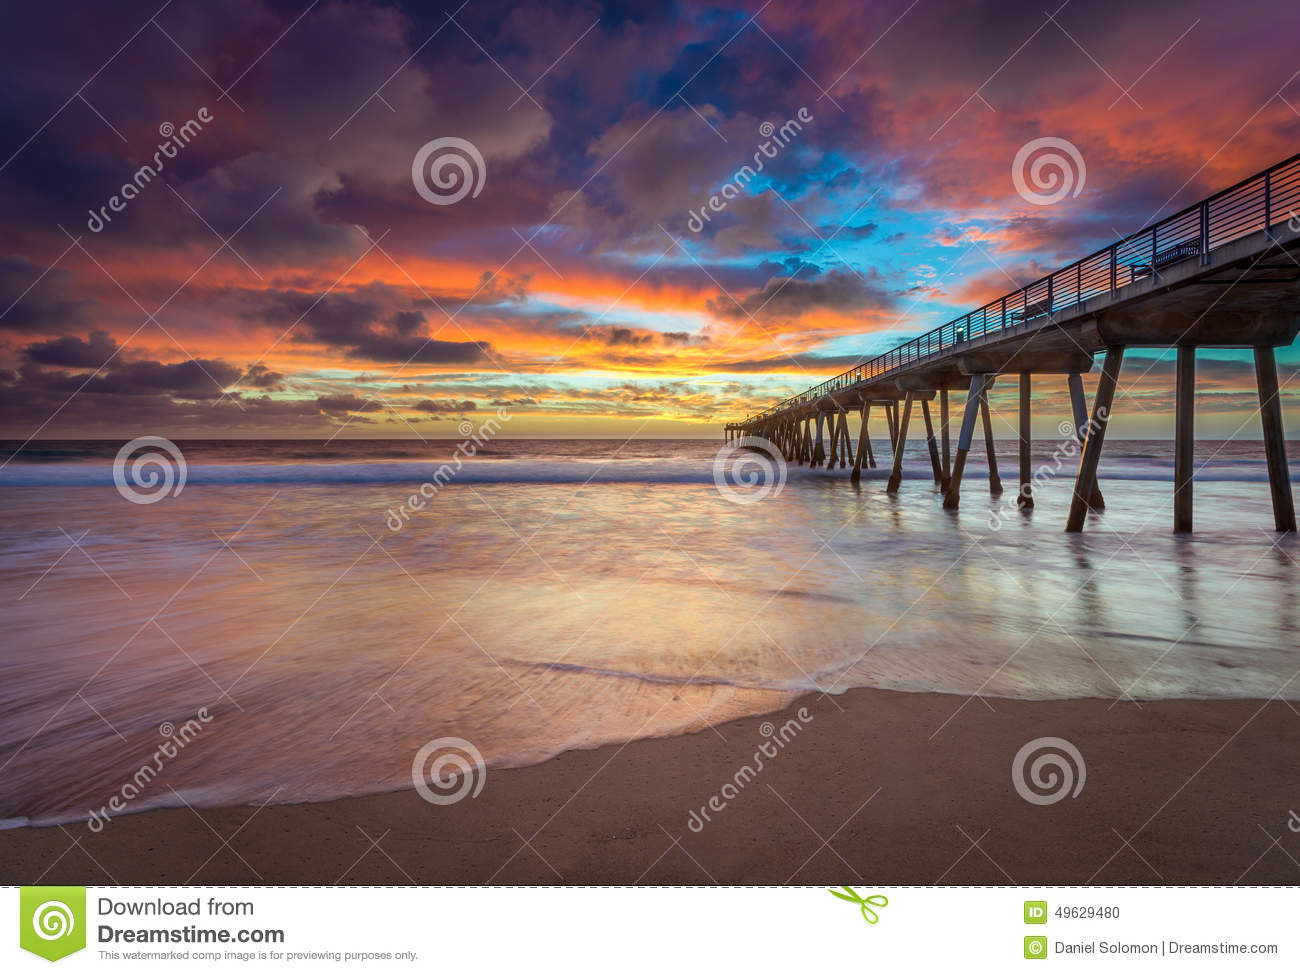 Southern California Pier at Sunset